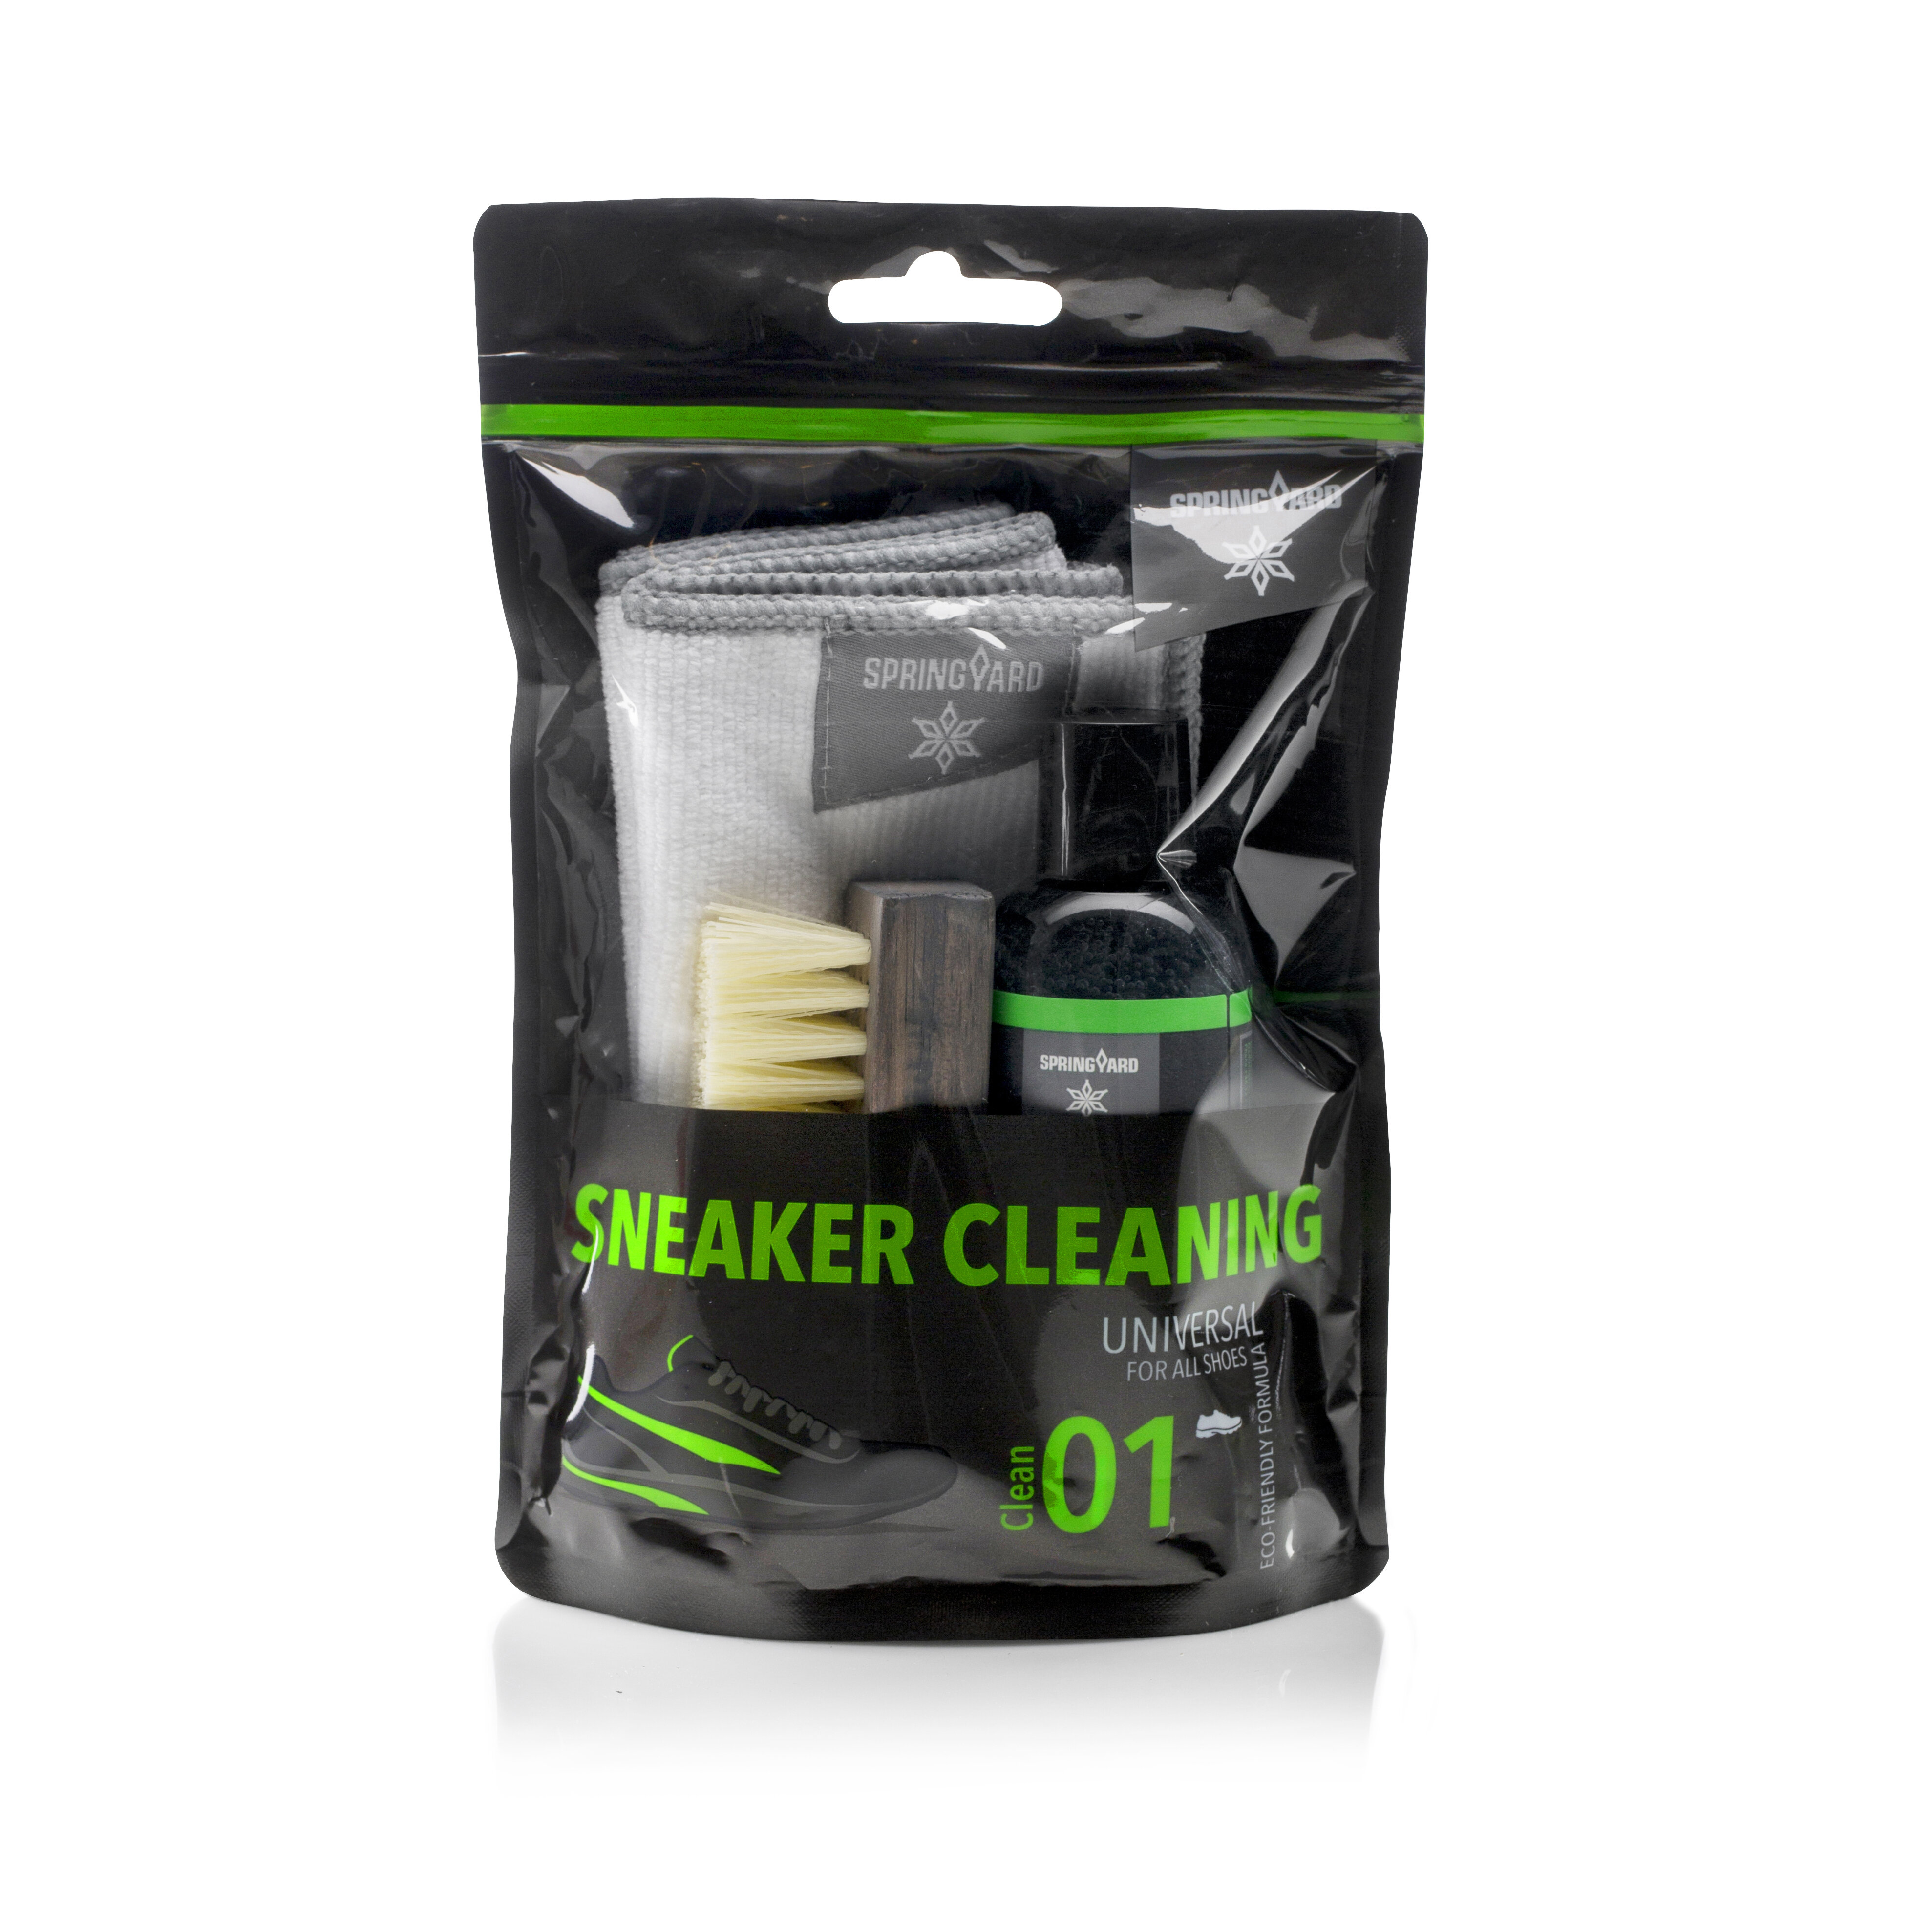 SY SNEAKER CLEANING KIT